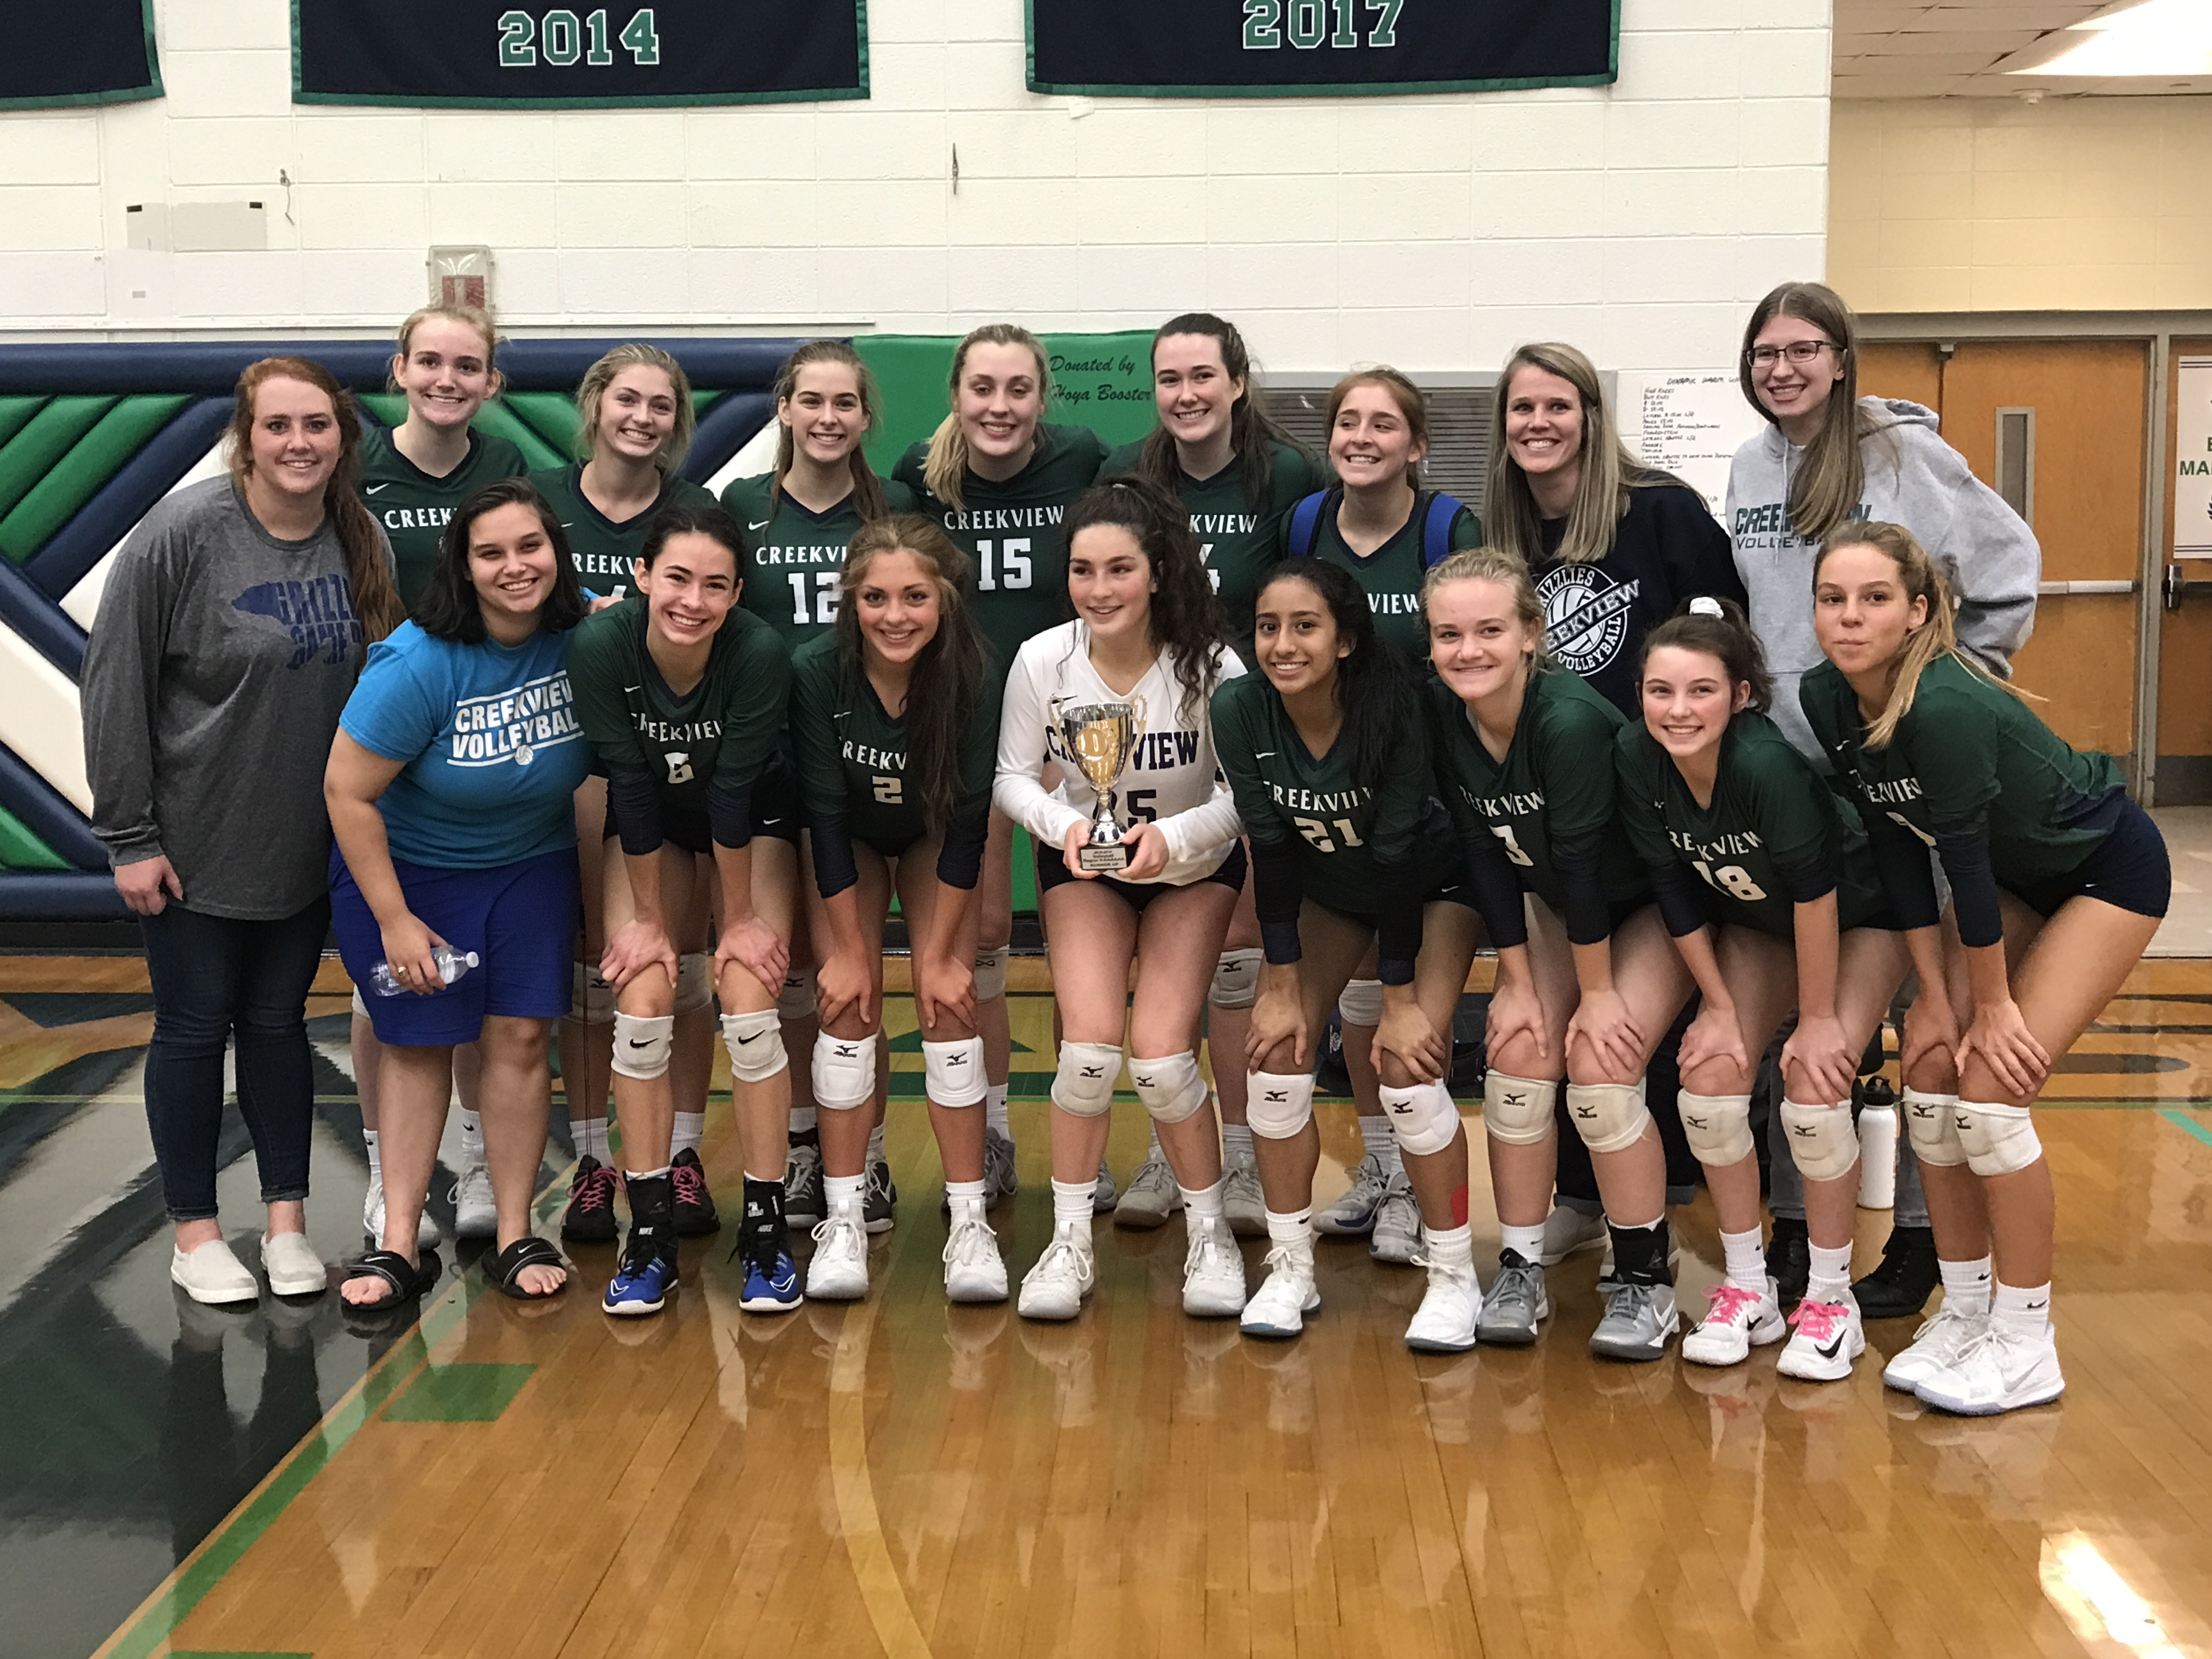 Lady Grizzlies Volleyball Advance to State, after Securing a 2nd Place Finish in Regionals!!!